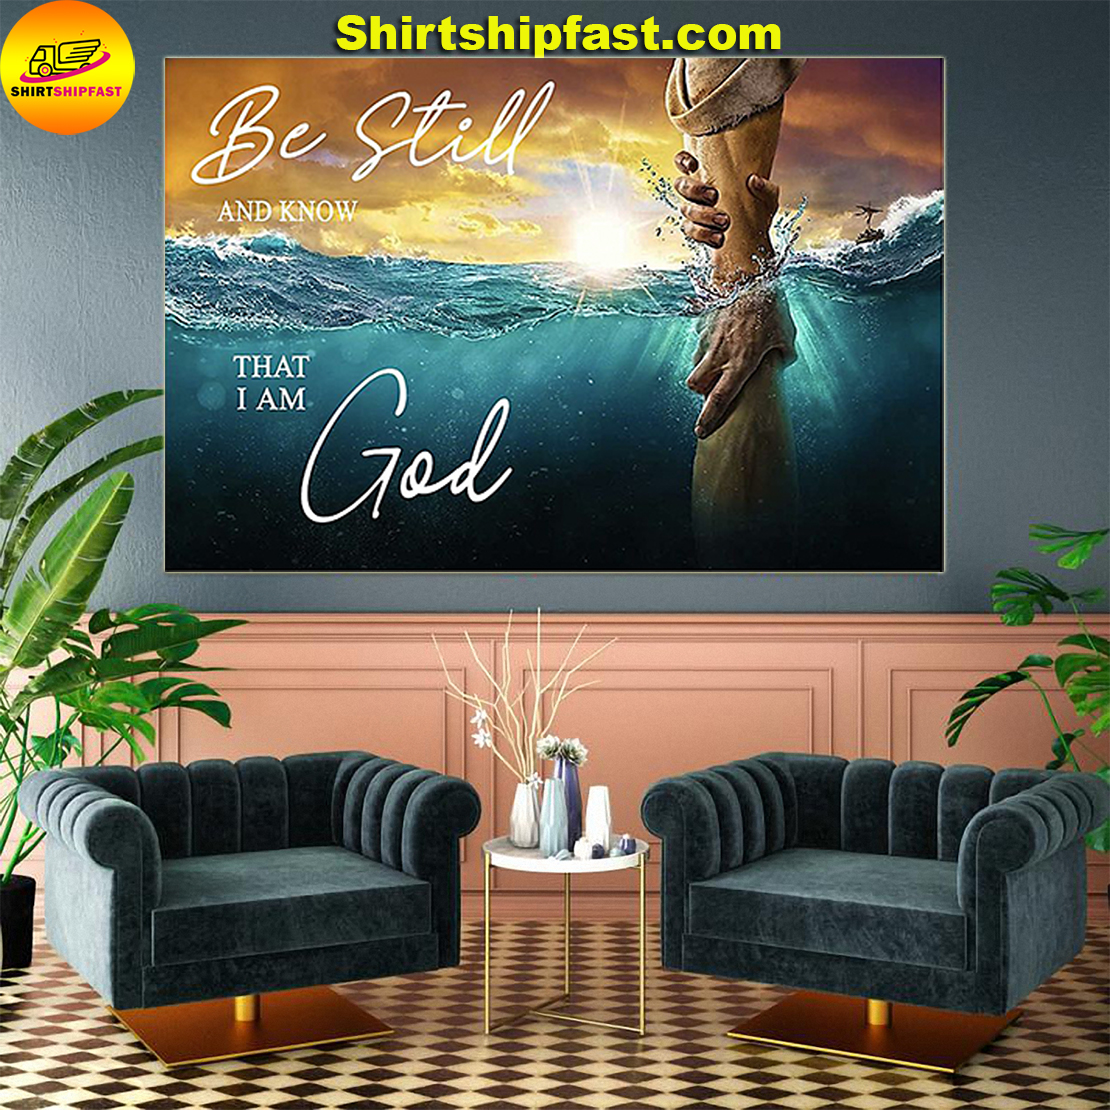 Be still and know that I am God poster - Picture 2